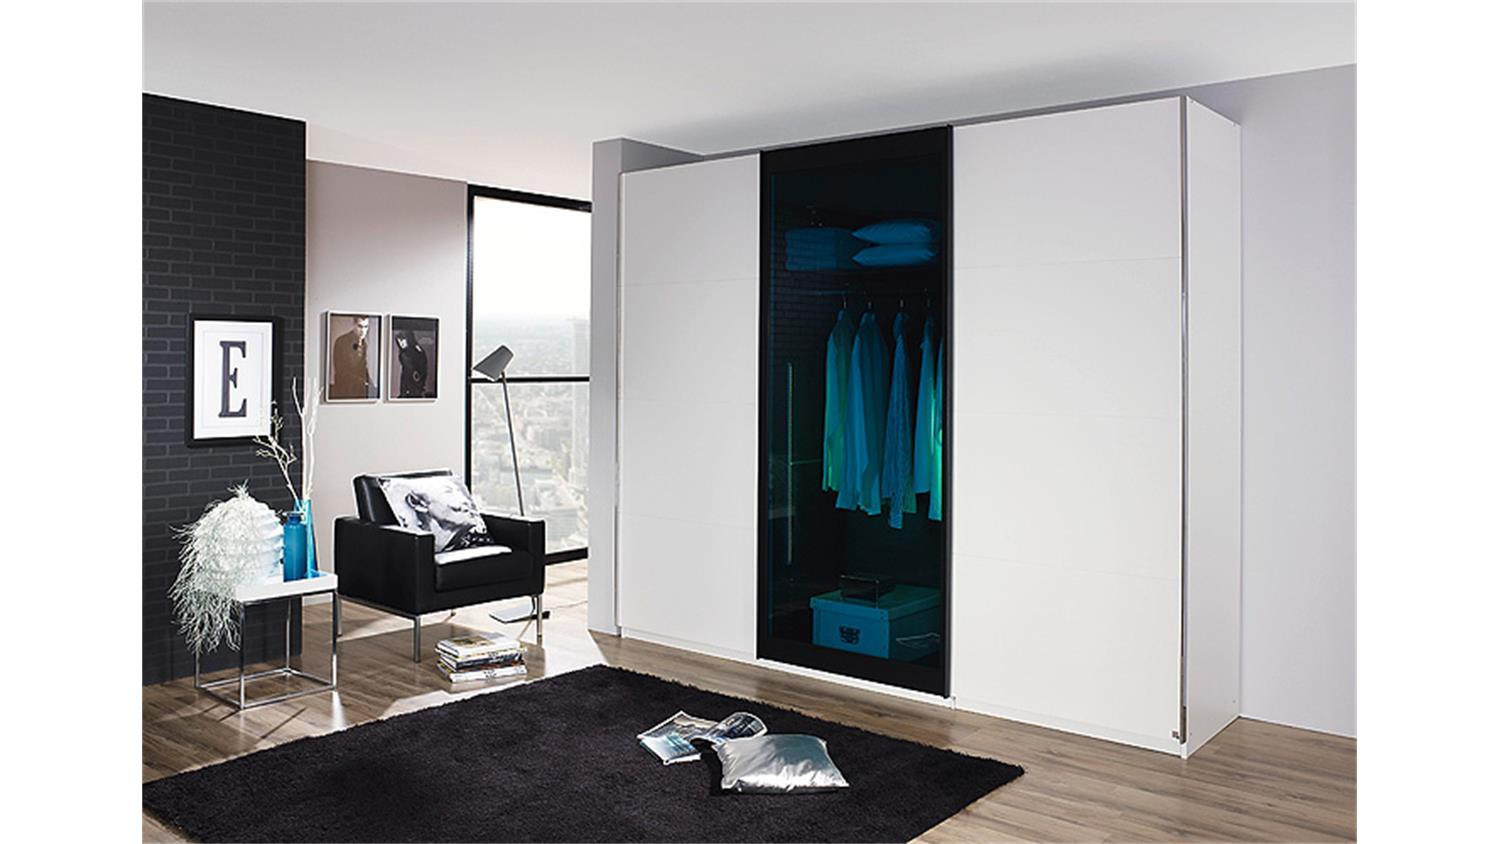 schwebet renschrank lahti wei petrol glas 226 cm. Black Bedroom Furniture Sets. Home Design Ideas